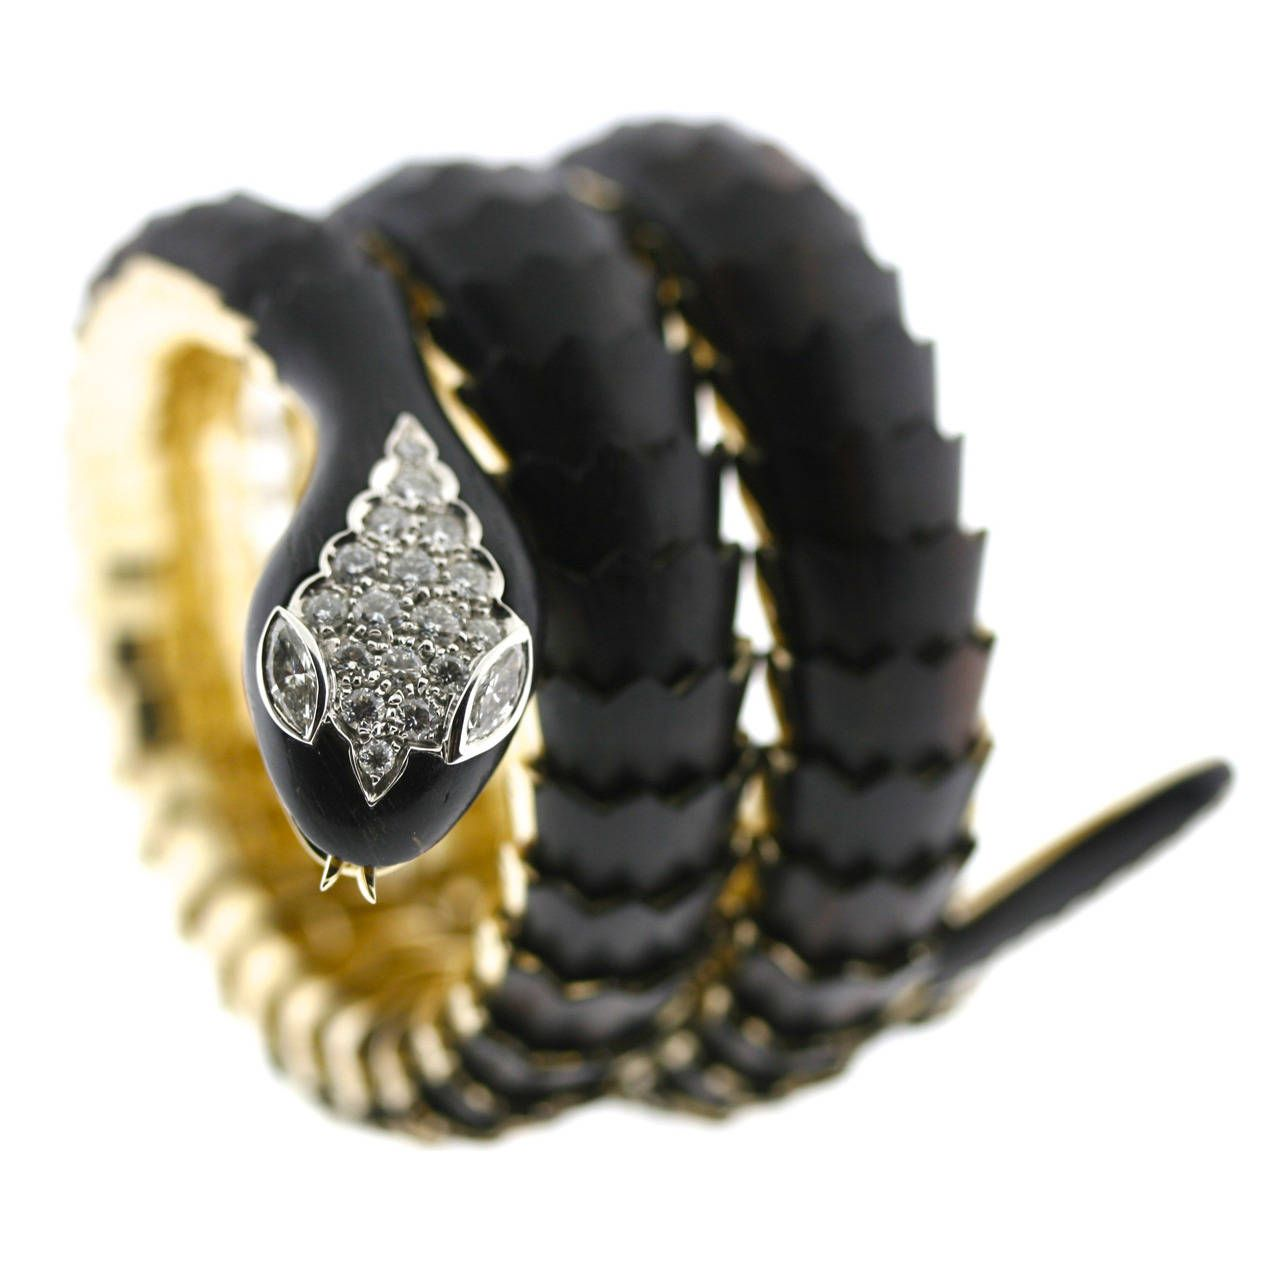 Illario Ebony Diamond Scaled Gold Coiled Serpent Bracelet